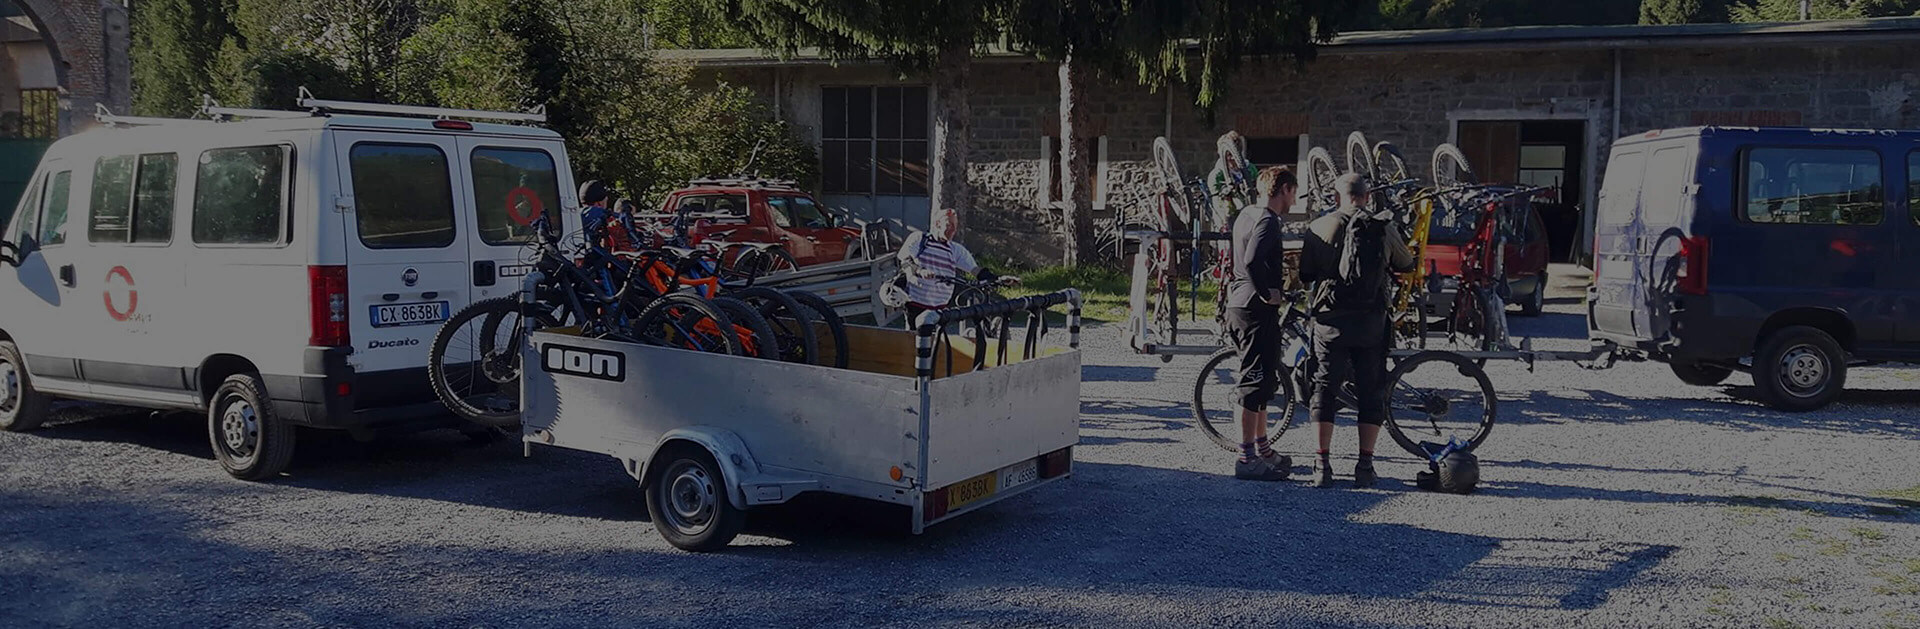 Discover the services of Omnia Freeride bike shuttle